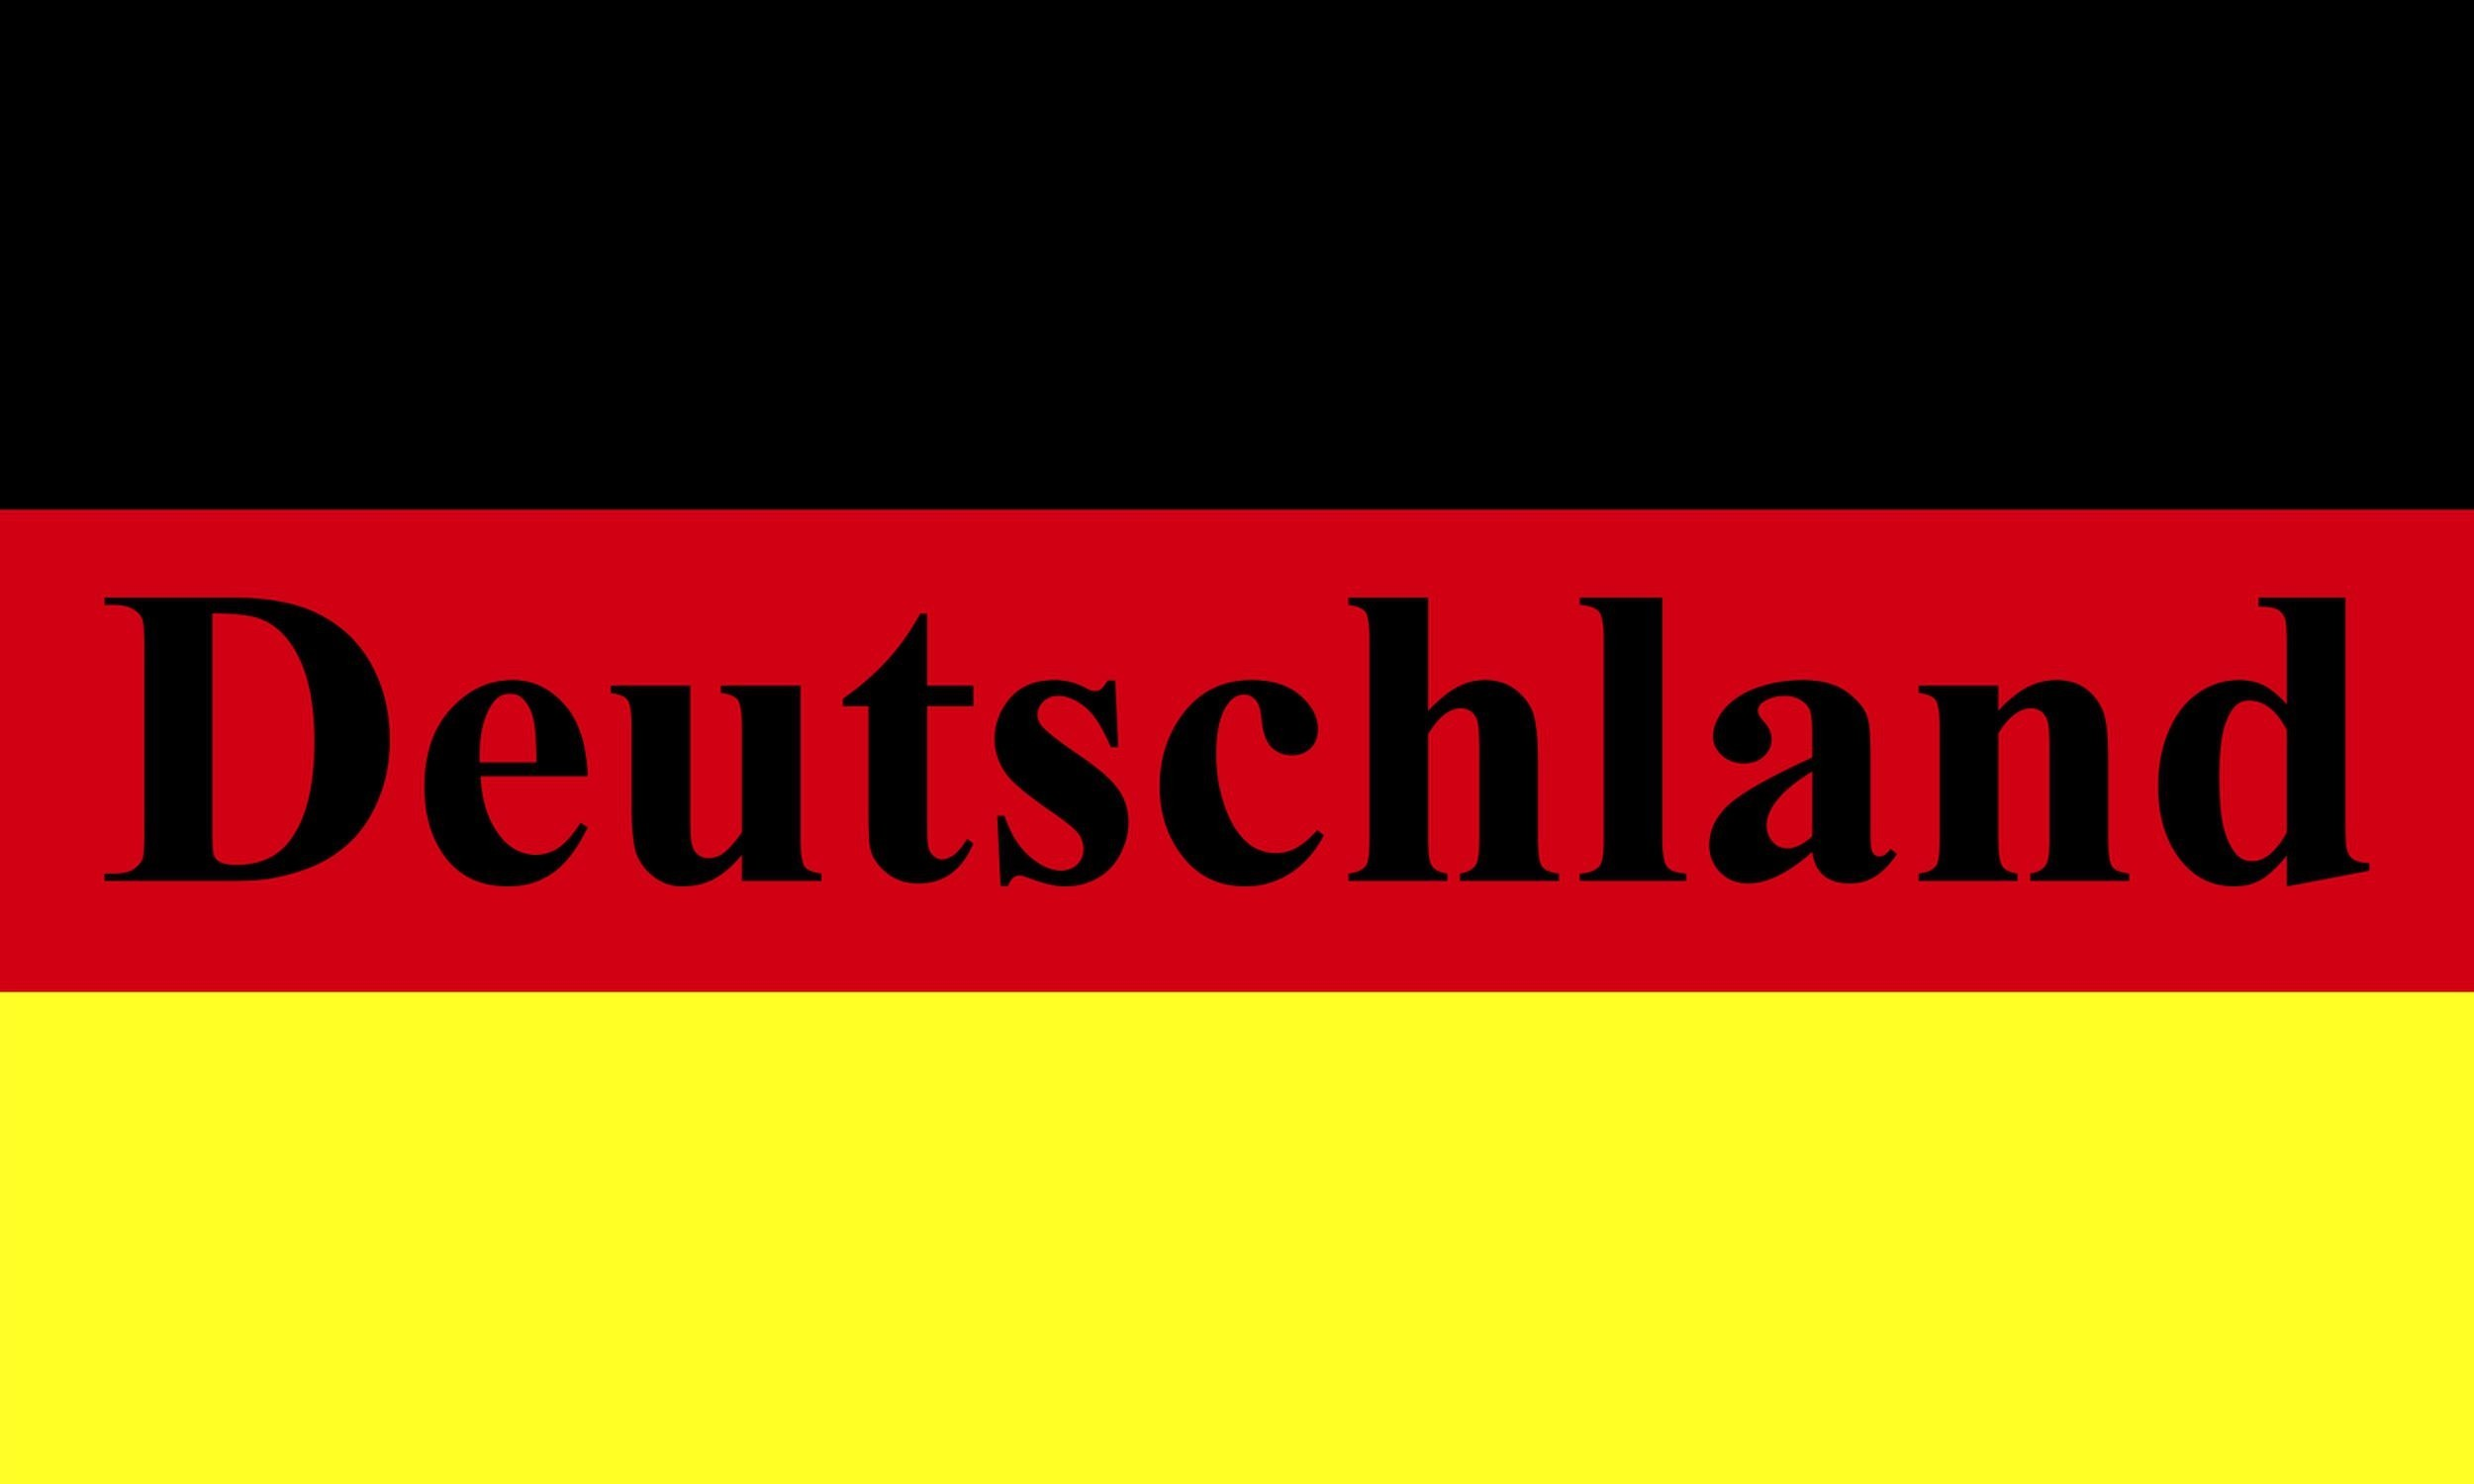 aufkleber deutschland flagge mit schriftzug neon 60 x 100 mm deutschland fanartikel olympia. Black Bedroom Furniture Sets. Home Design Ideas